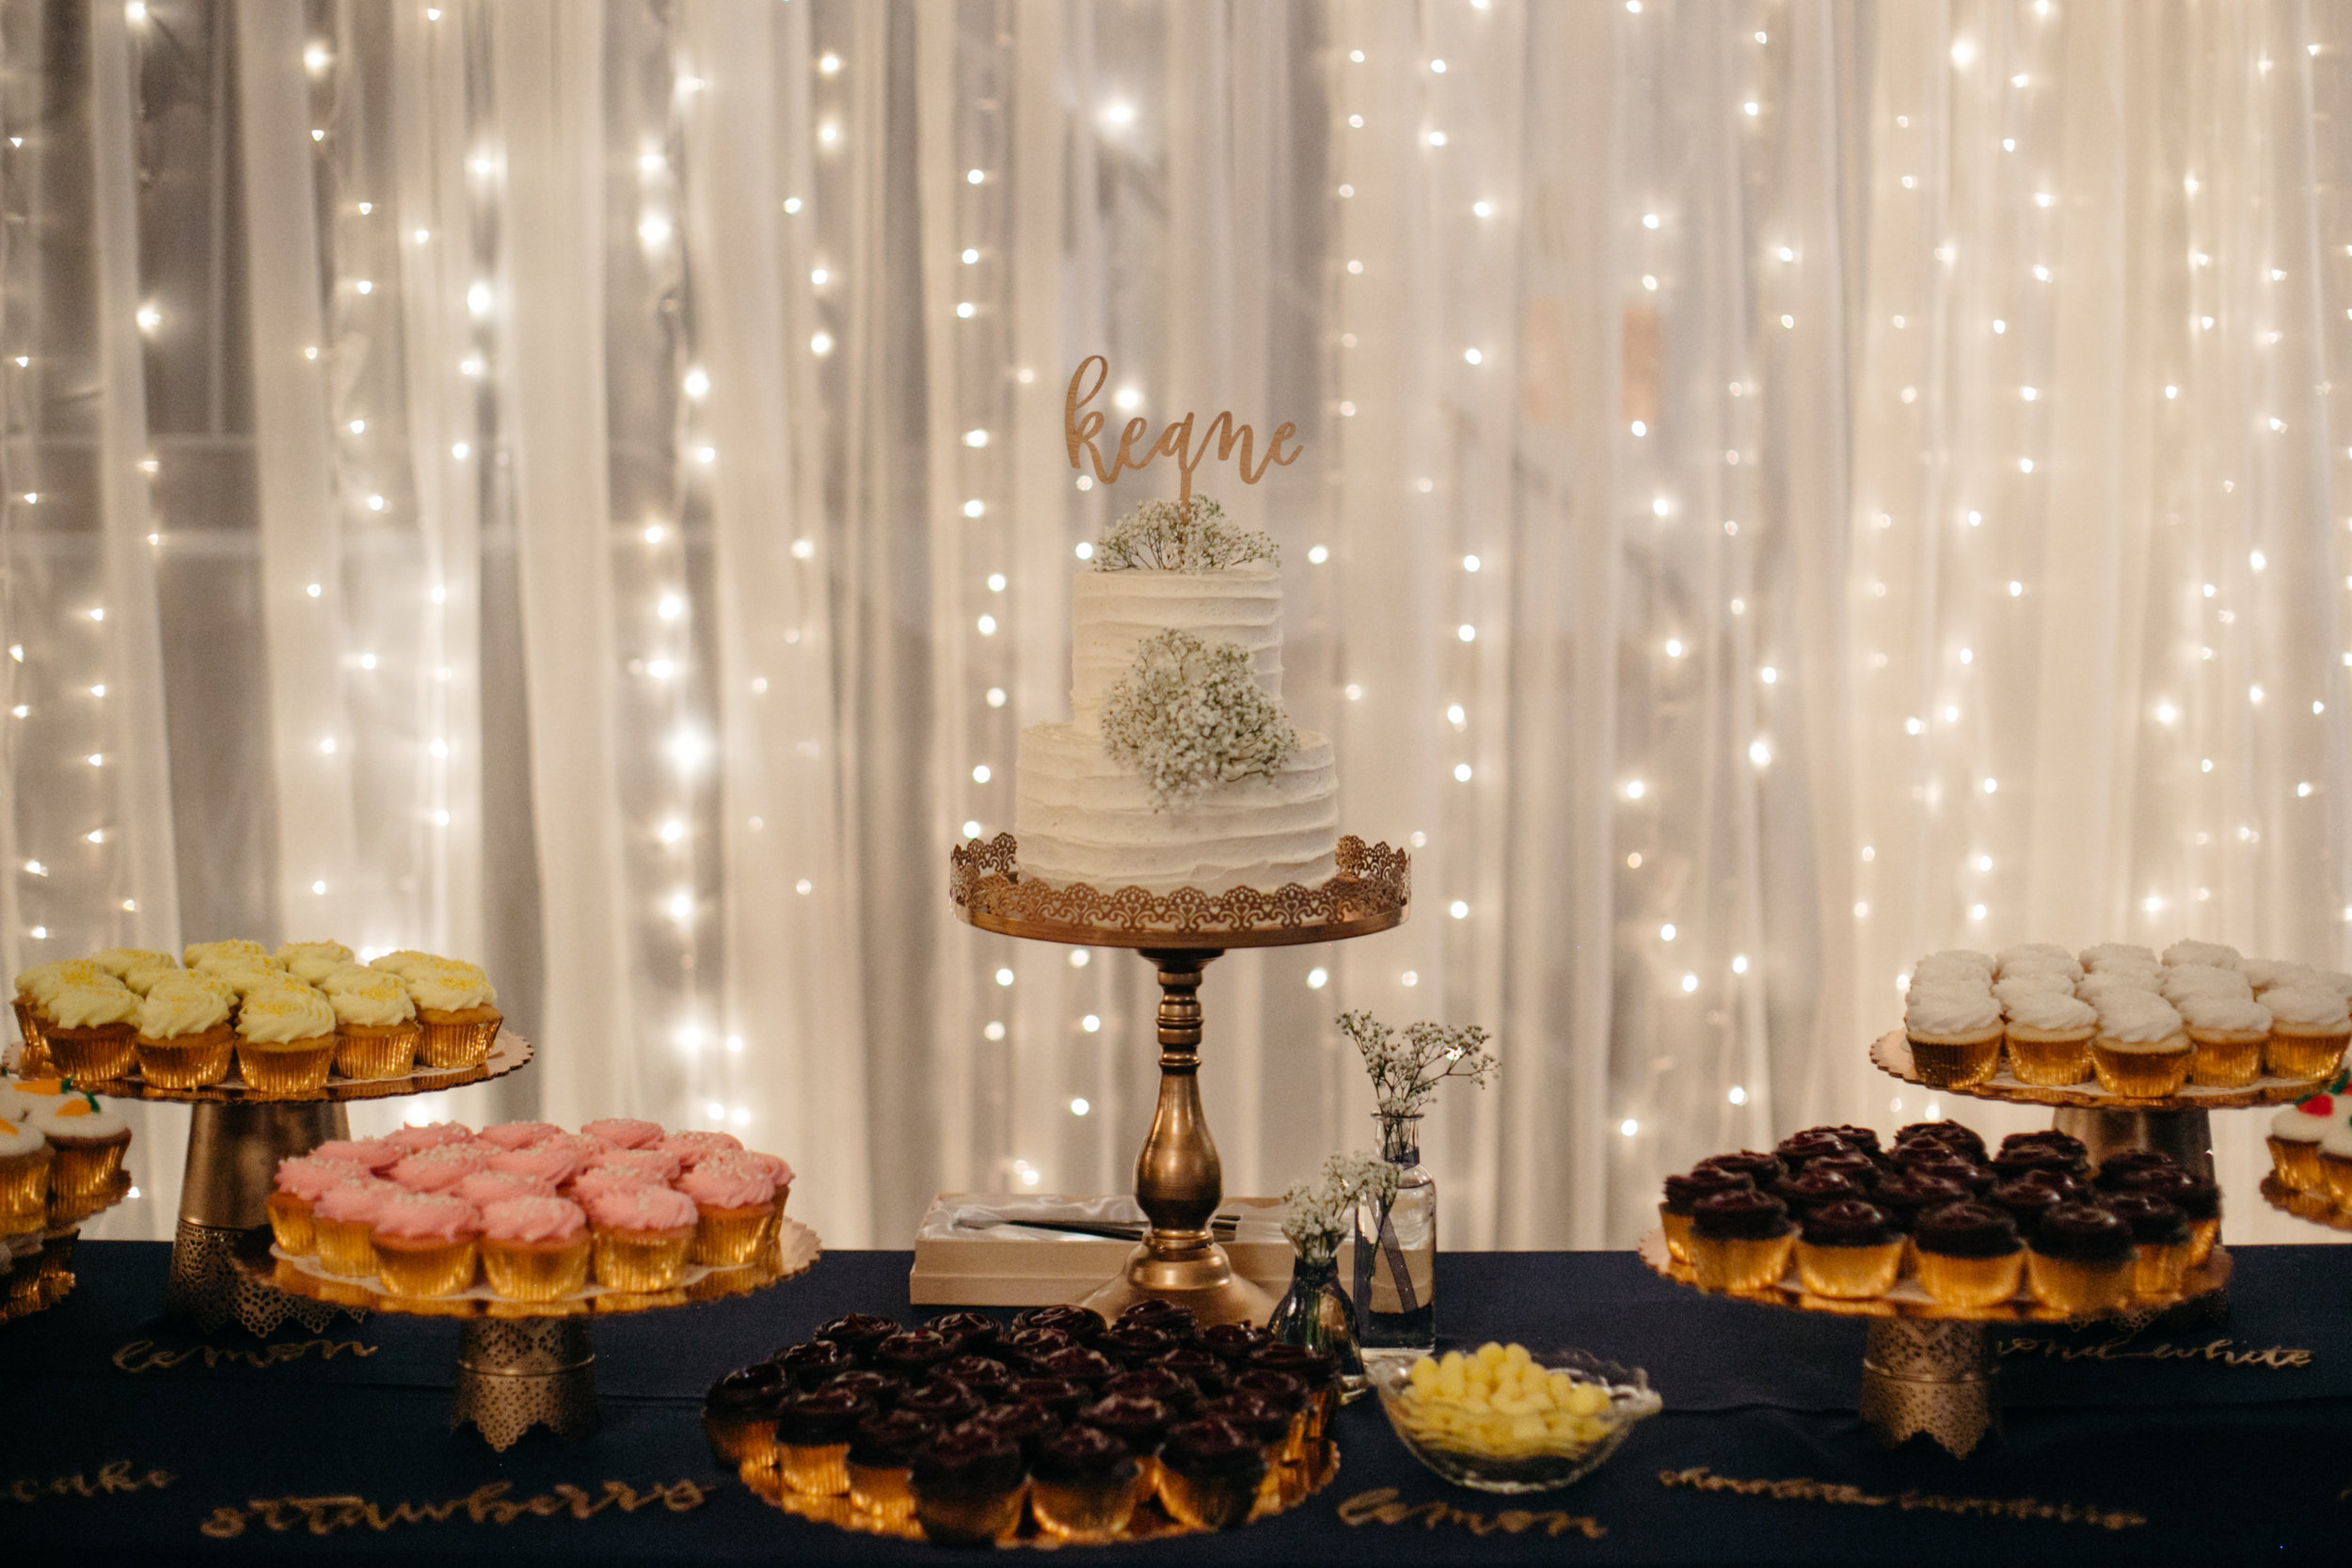 Lighted curtain behind cake table